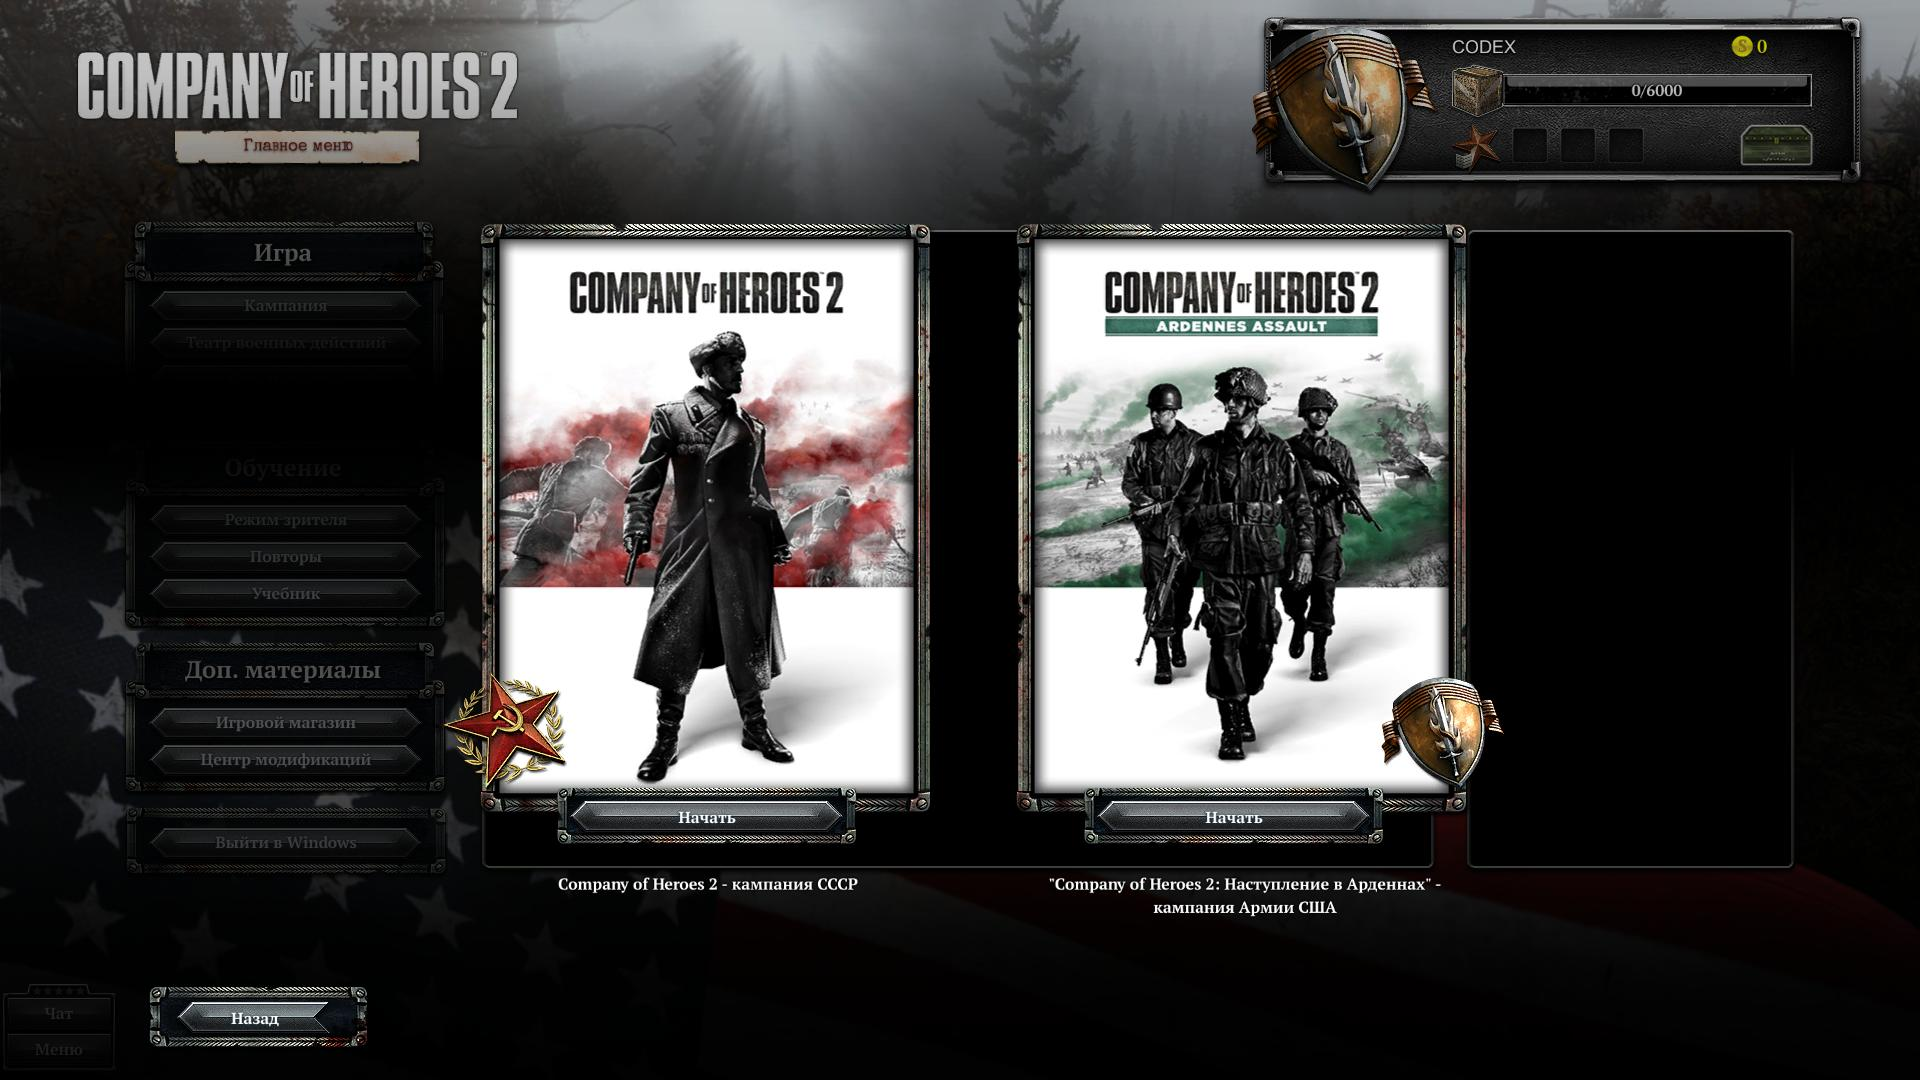 Company of Heroes 2: Master Collection [v 4.0.0.21699 + DLC's] (2014) PC   RePack by R.G. Механики - Скриншот 3